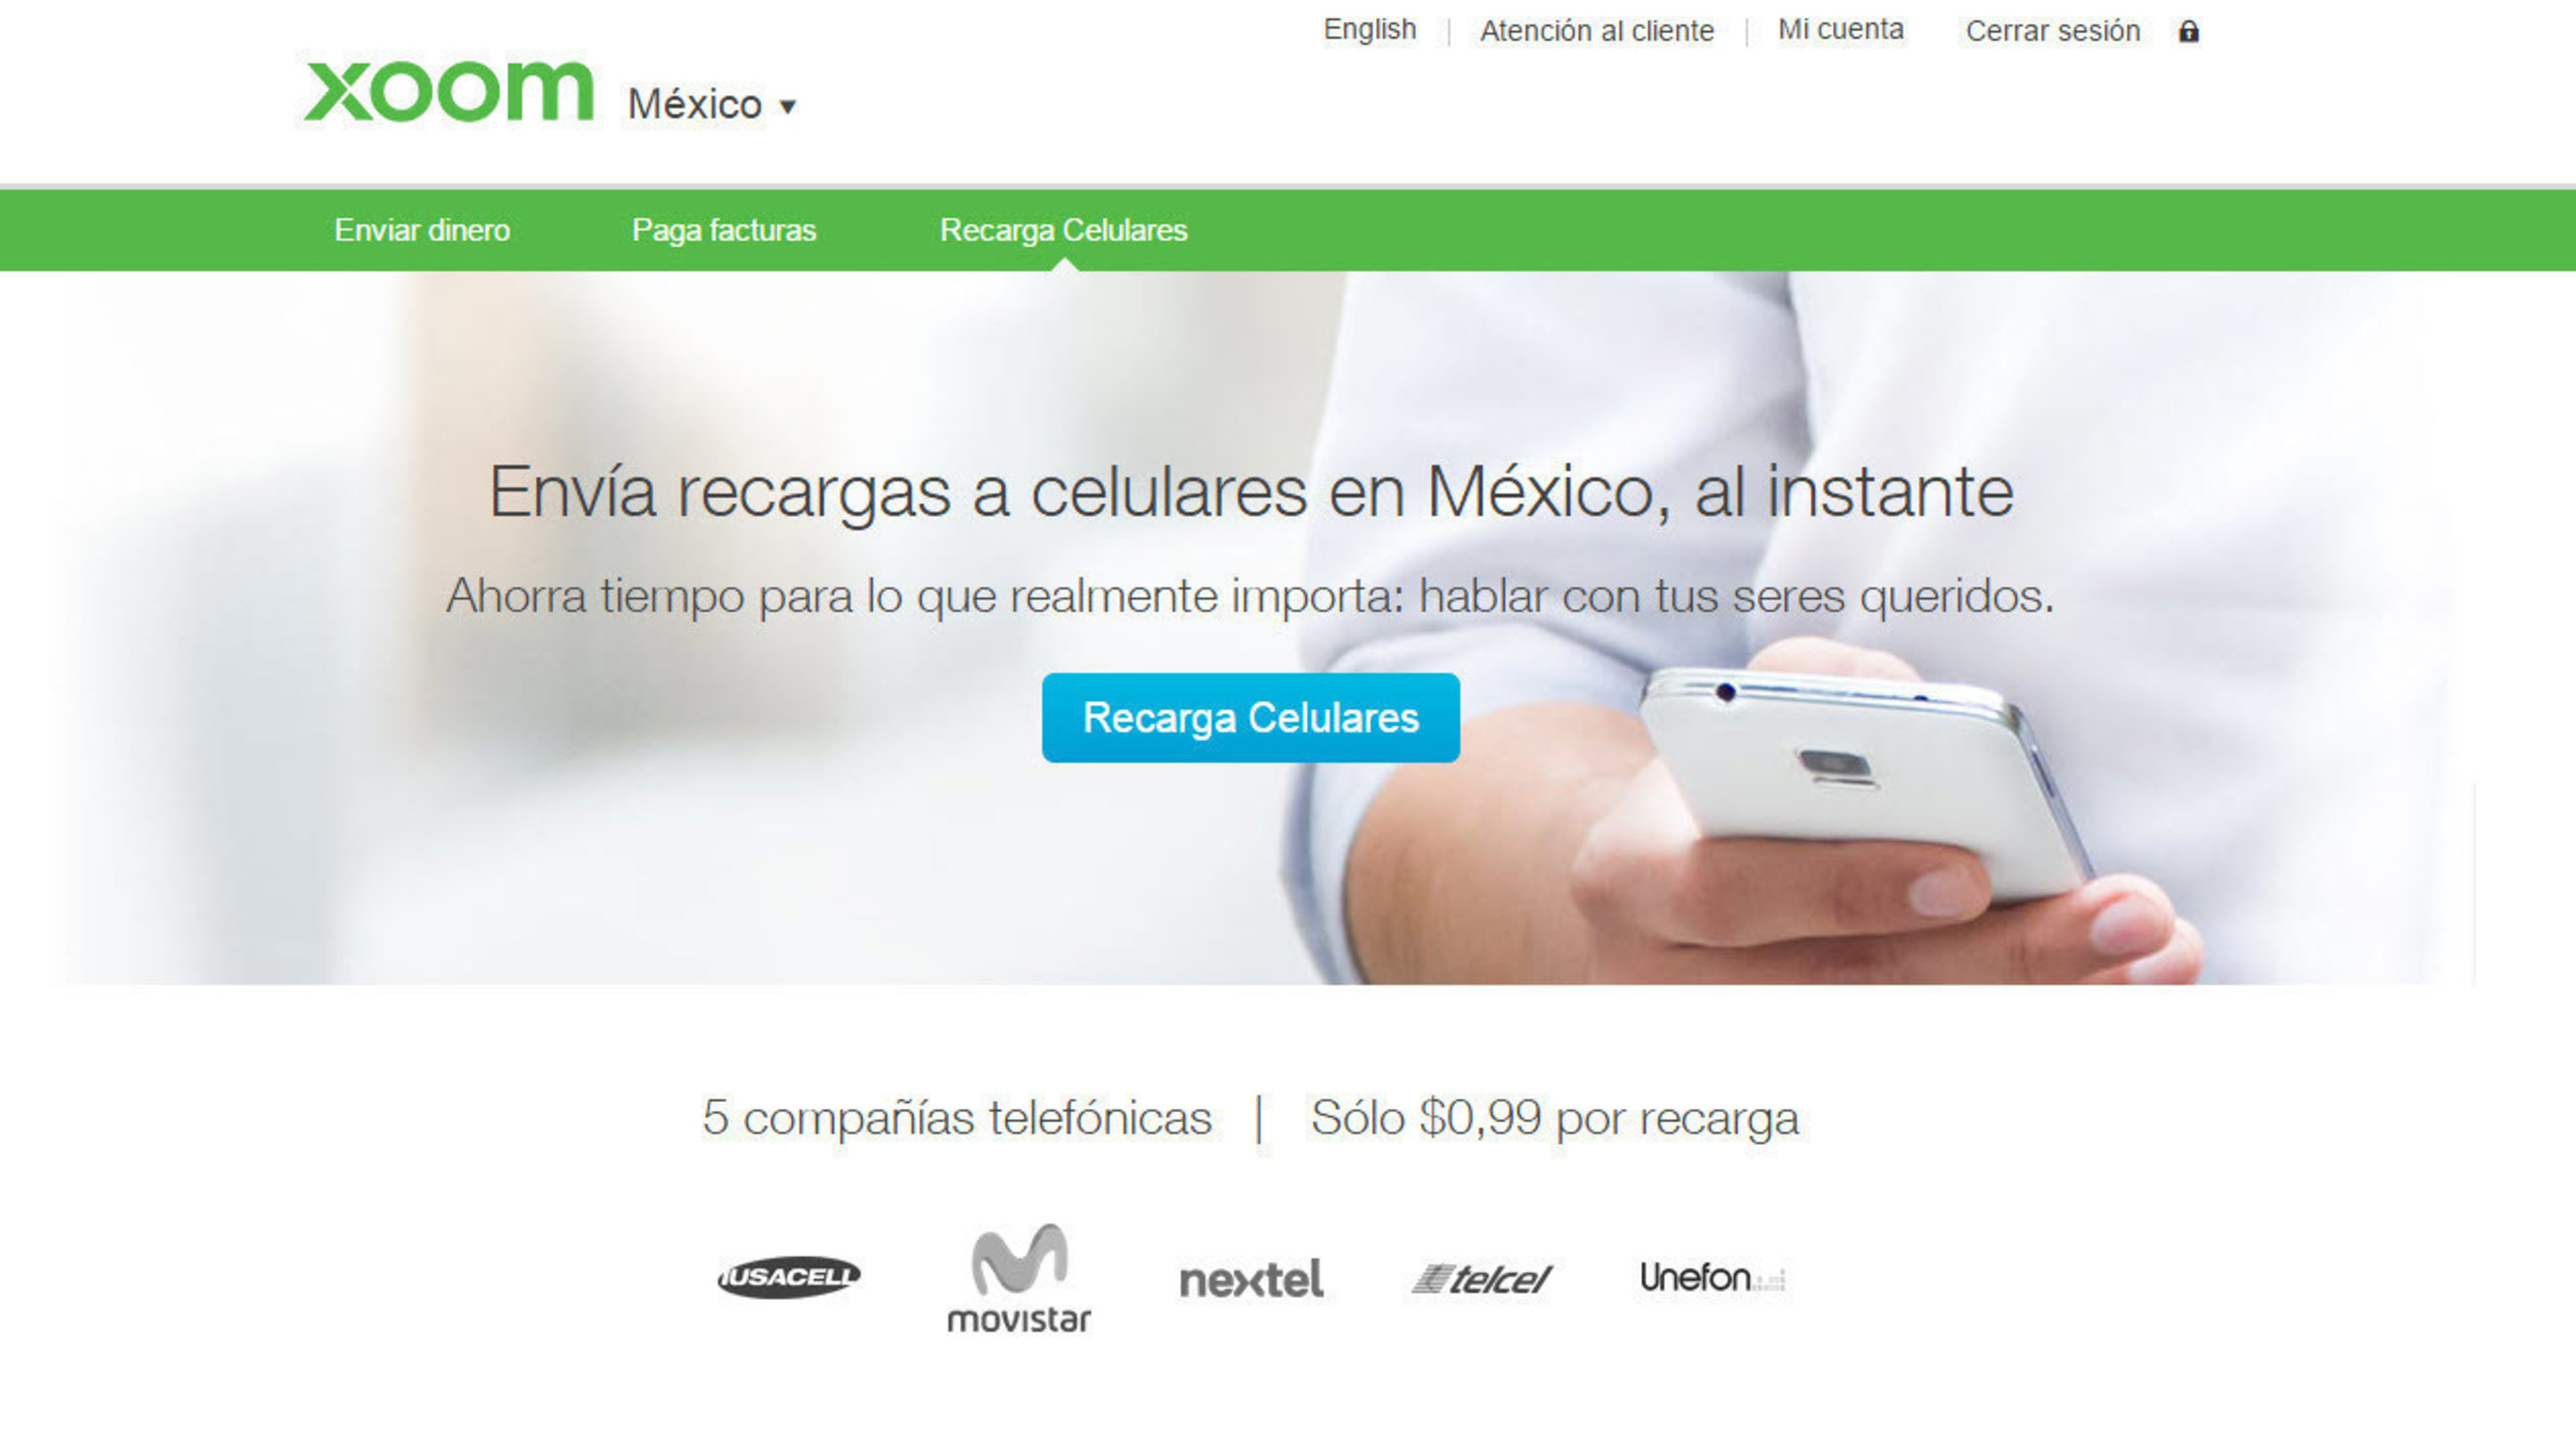 Xoom Adds Instant Mobile Reload to Latin America, Improves Convenience.  Xoom Mobile Reload allows customers to instantly recharge prepaid mobile phones online from the U.S. to Telcel, Movistar, Claro, Digicel, Nextel, Tigo Phones in Latin America and the Caribbean.